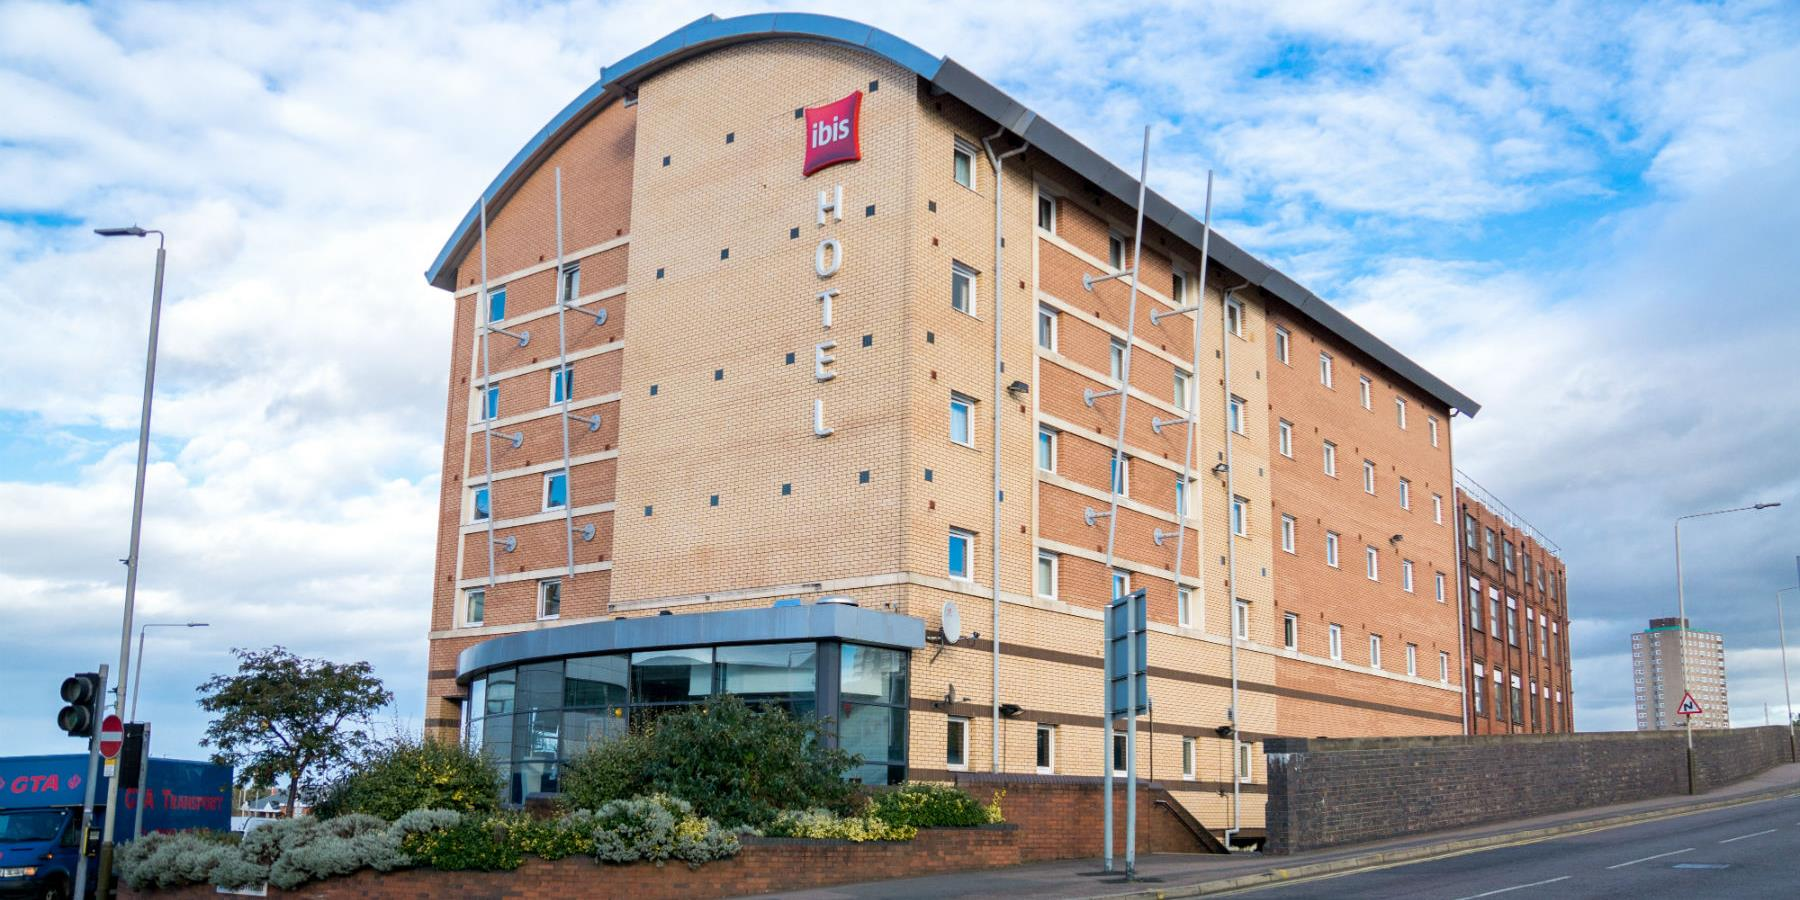 Hotel Ibis Leicester City Centre - Accommodation in Leicester